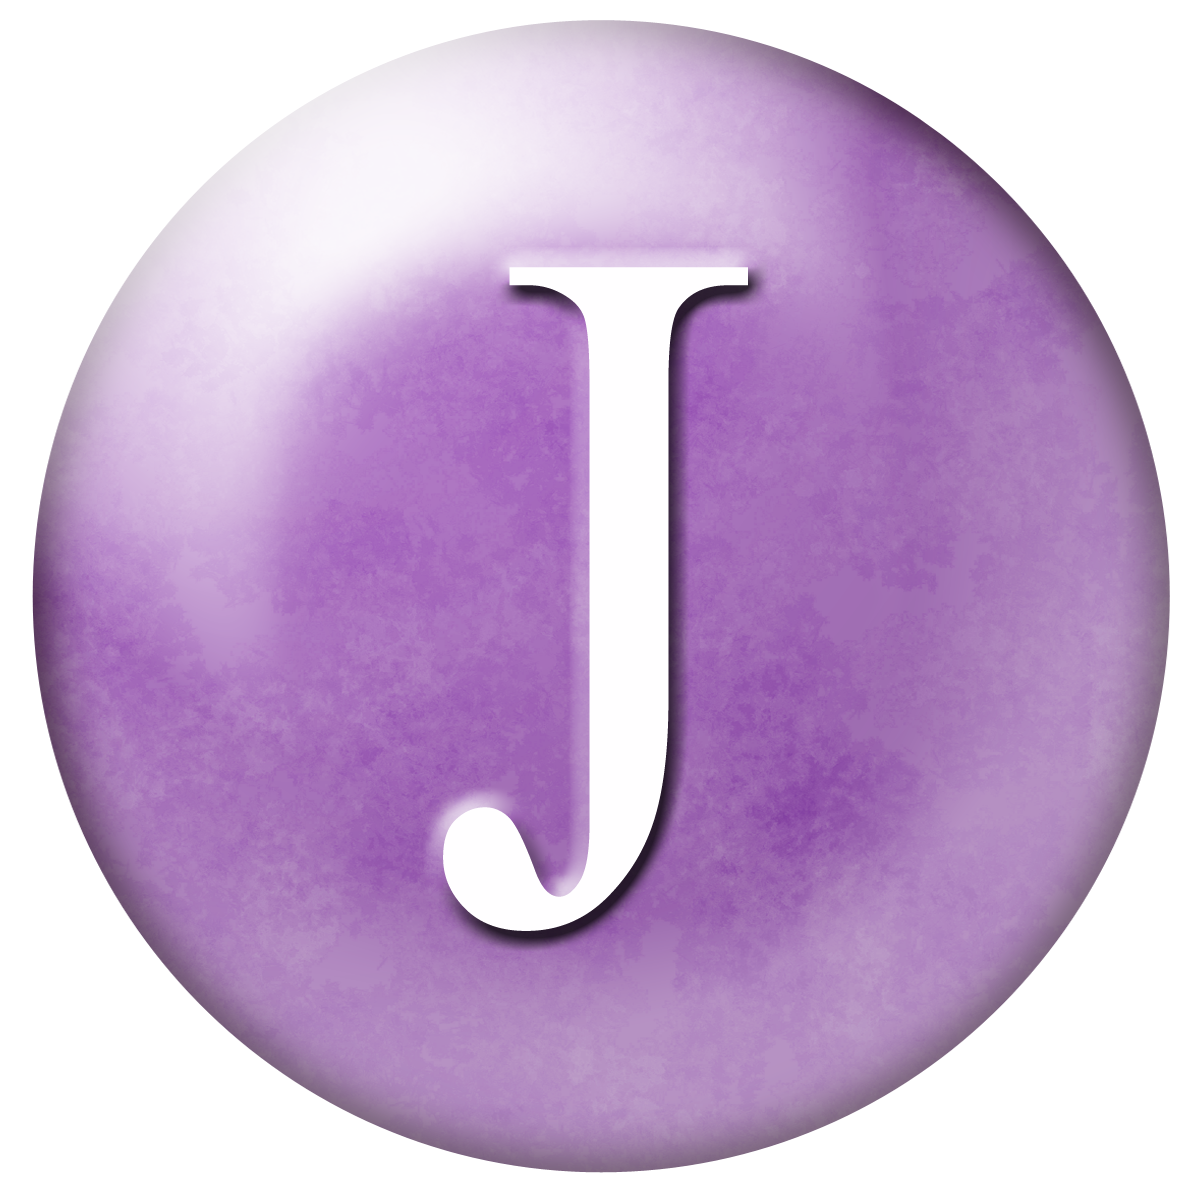 Purple J Pictures to Pin on Pinterest - PinsDaddy